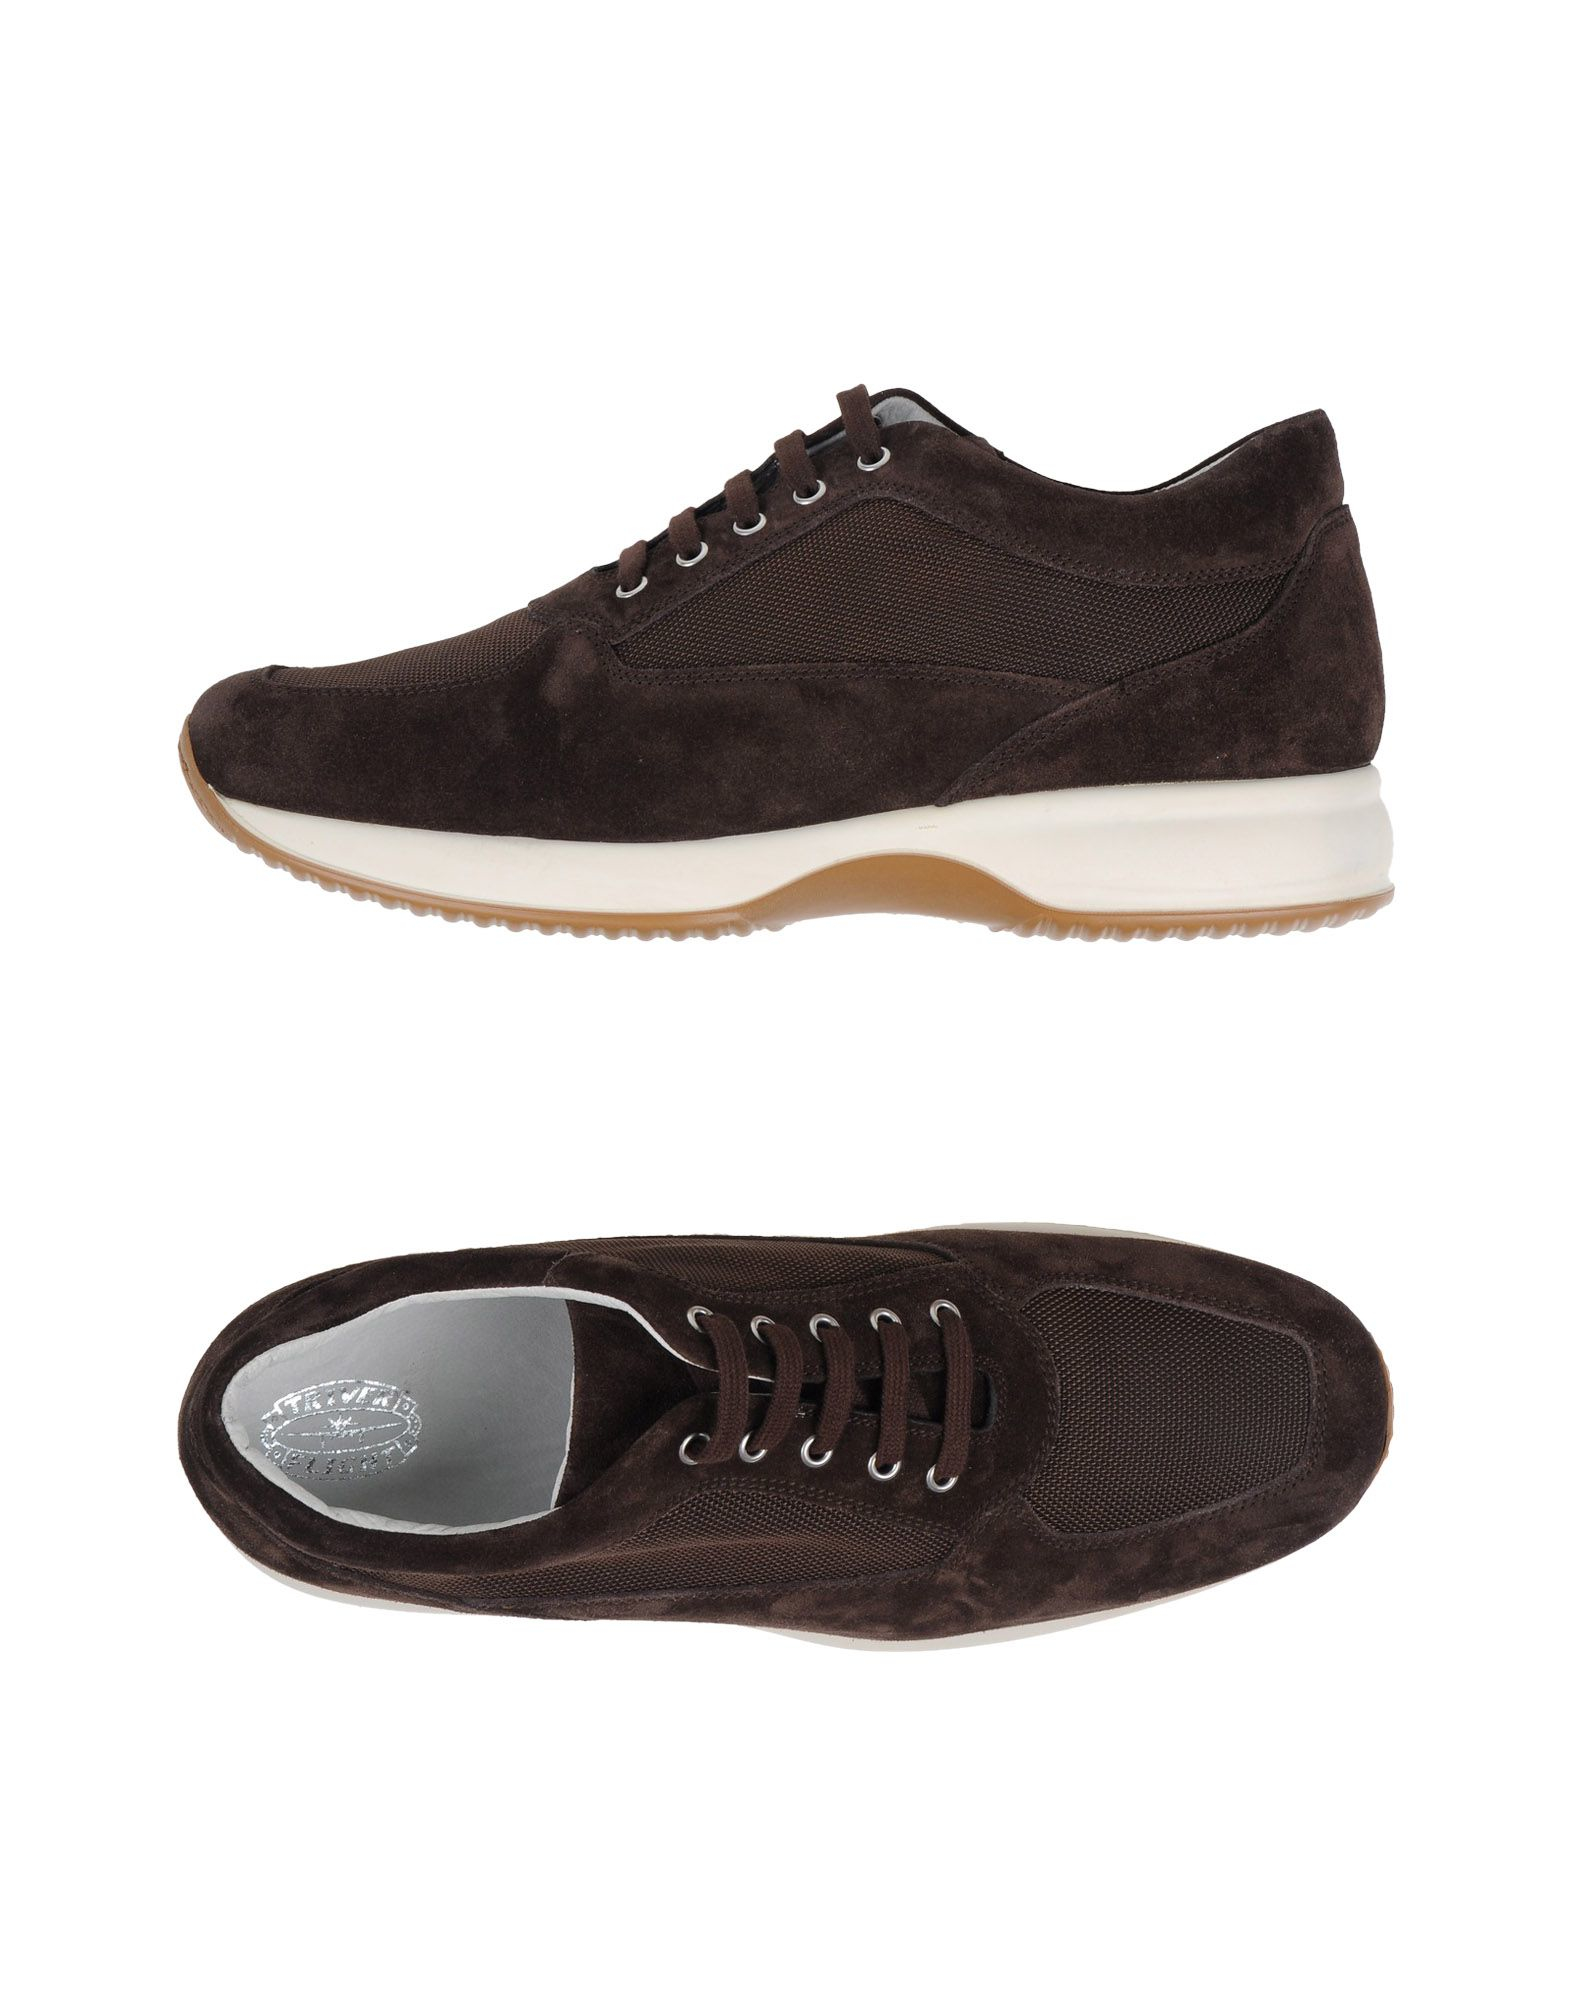 Triver flight Low-tops & Trainers in Brown for Men